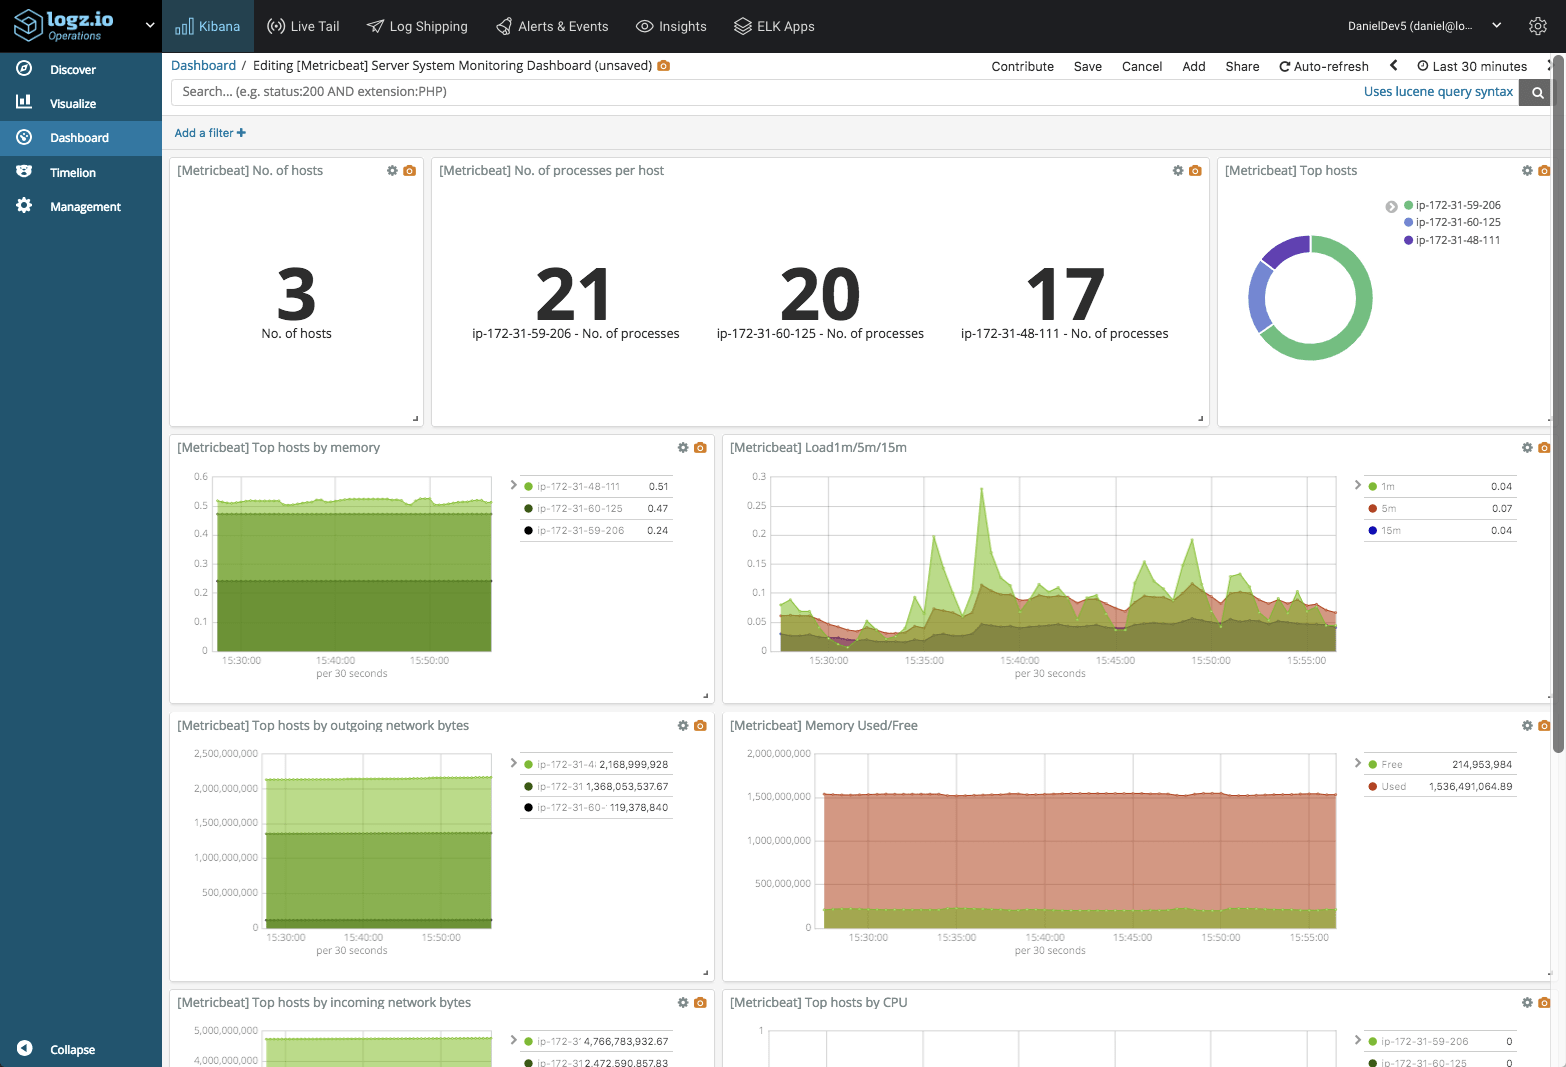 infrastructure logs